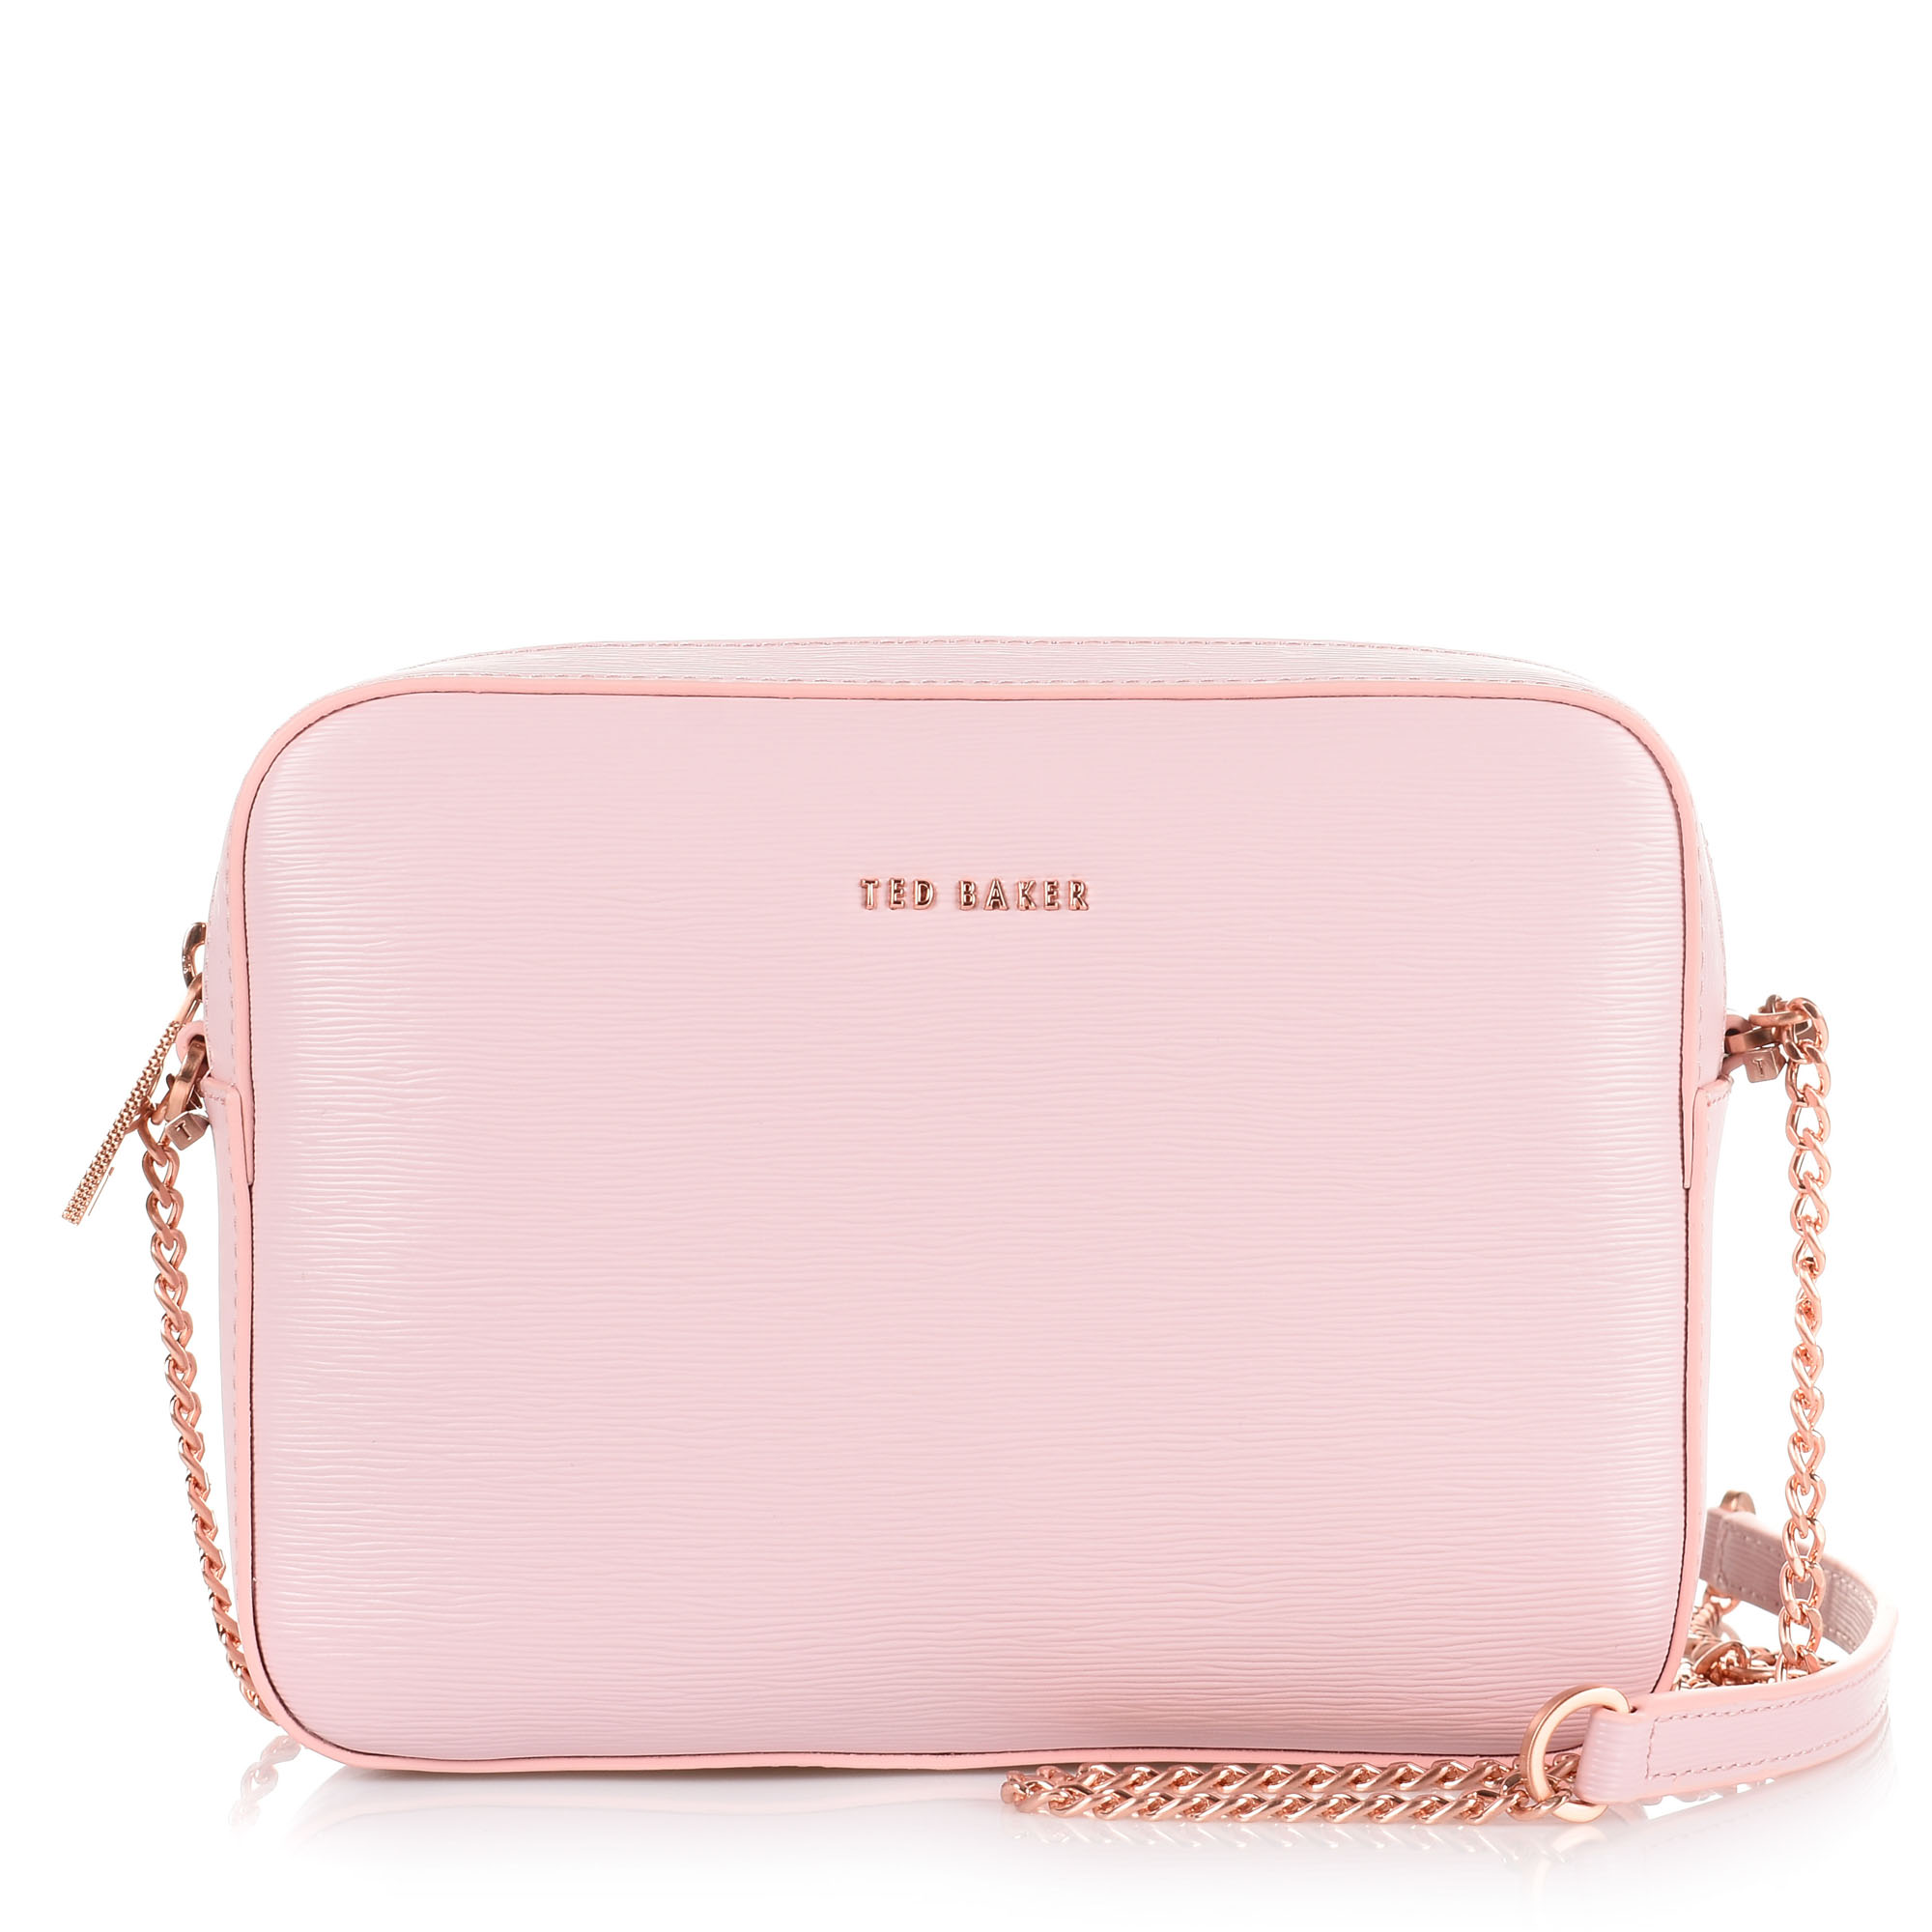 958eed173f Δερμάτινο Τσαντάκι Ώμου-Χιαστί Ted Baker Leather Xbody Camera Bag ...